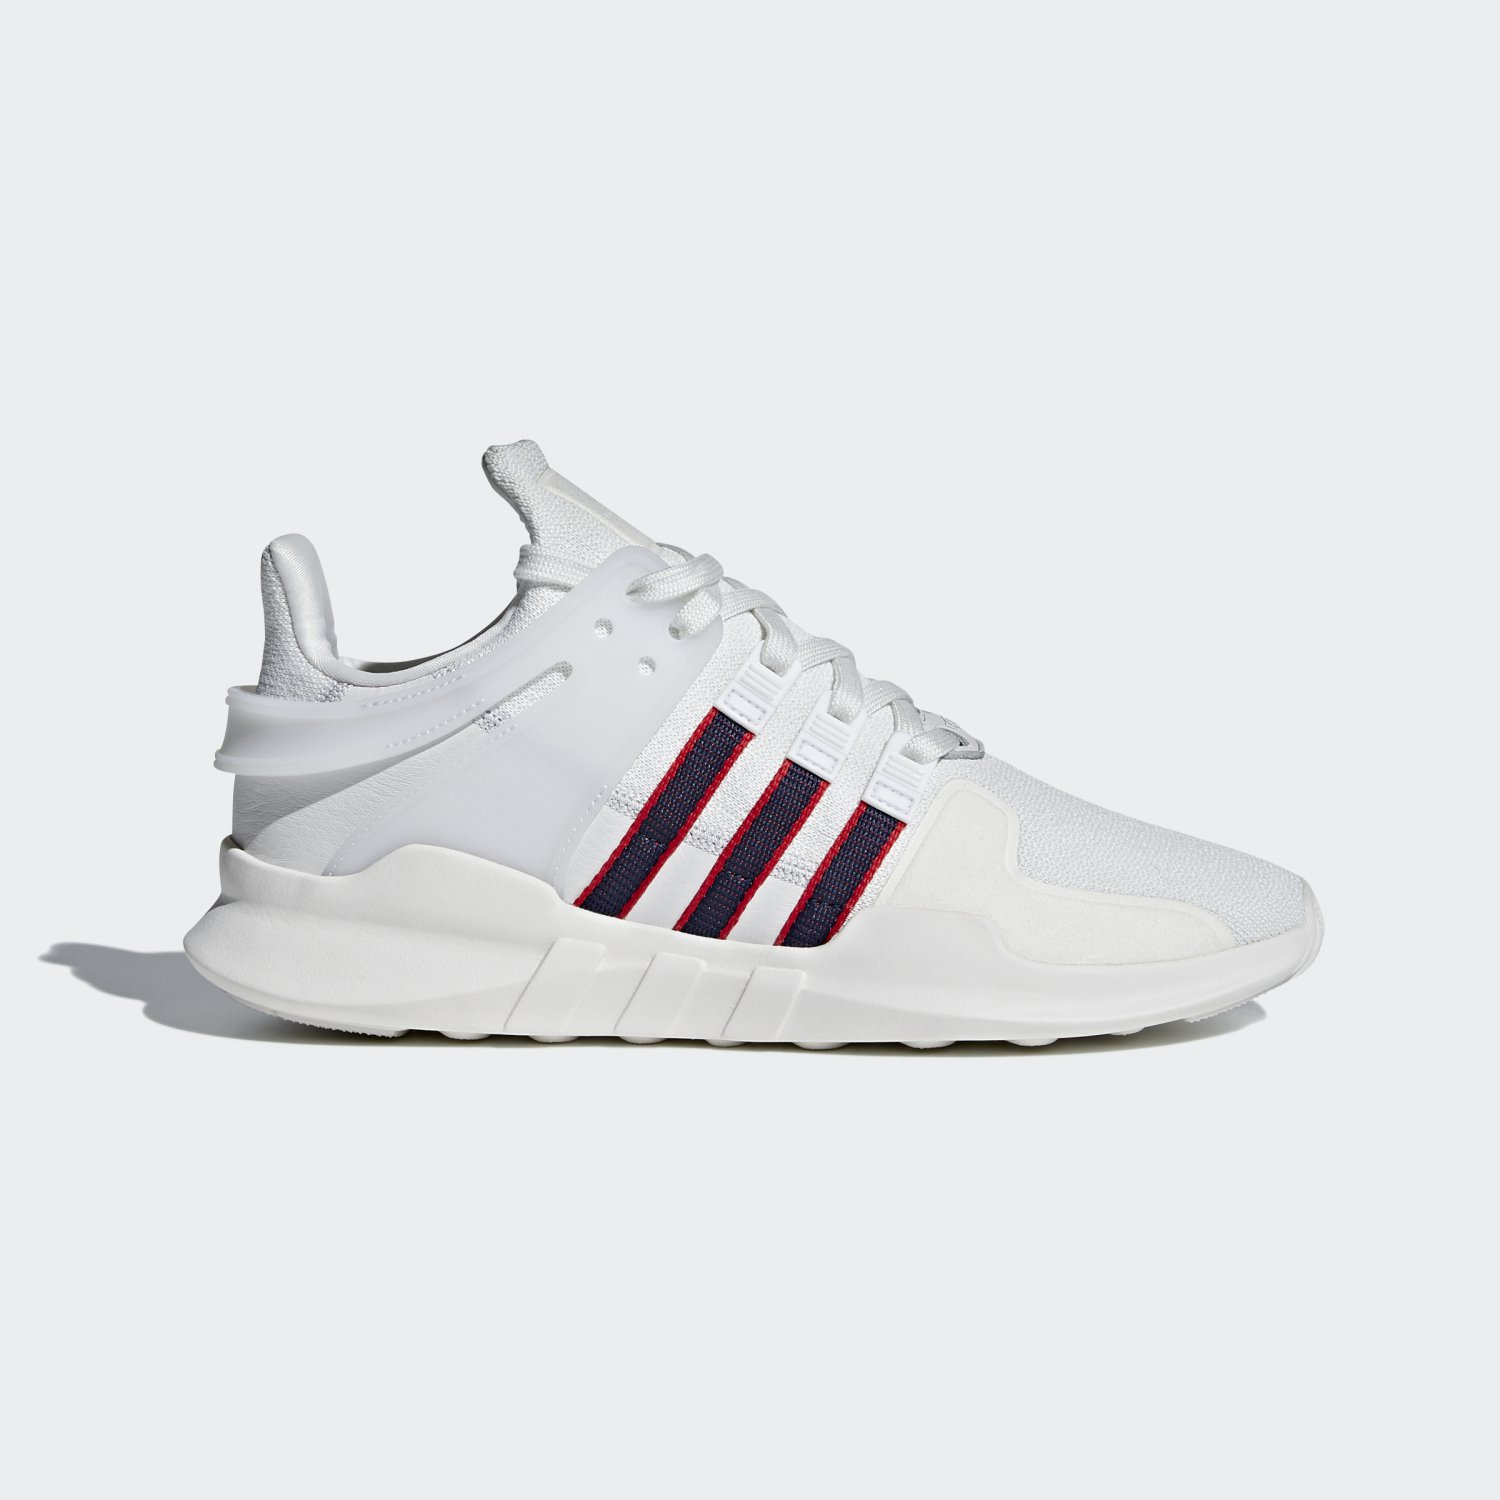 EQT Support Adv White Navy Scarlet